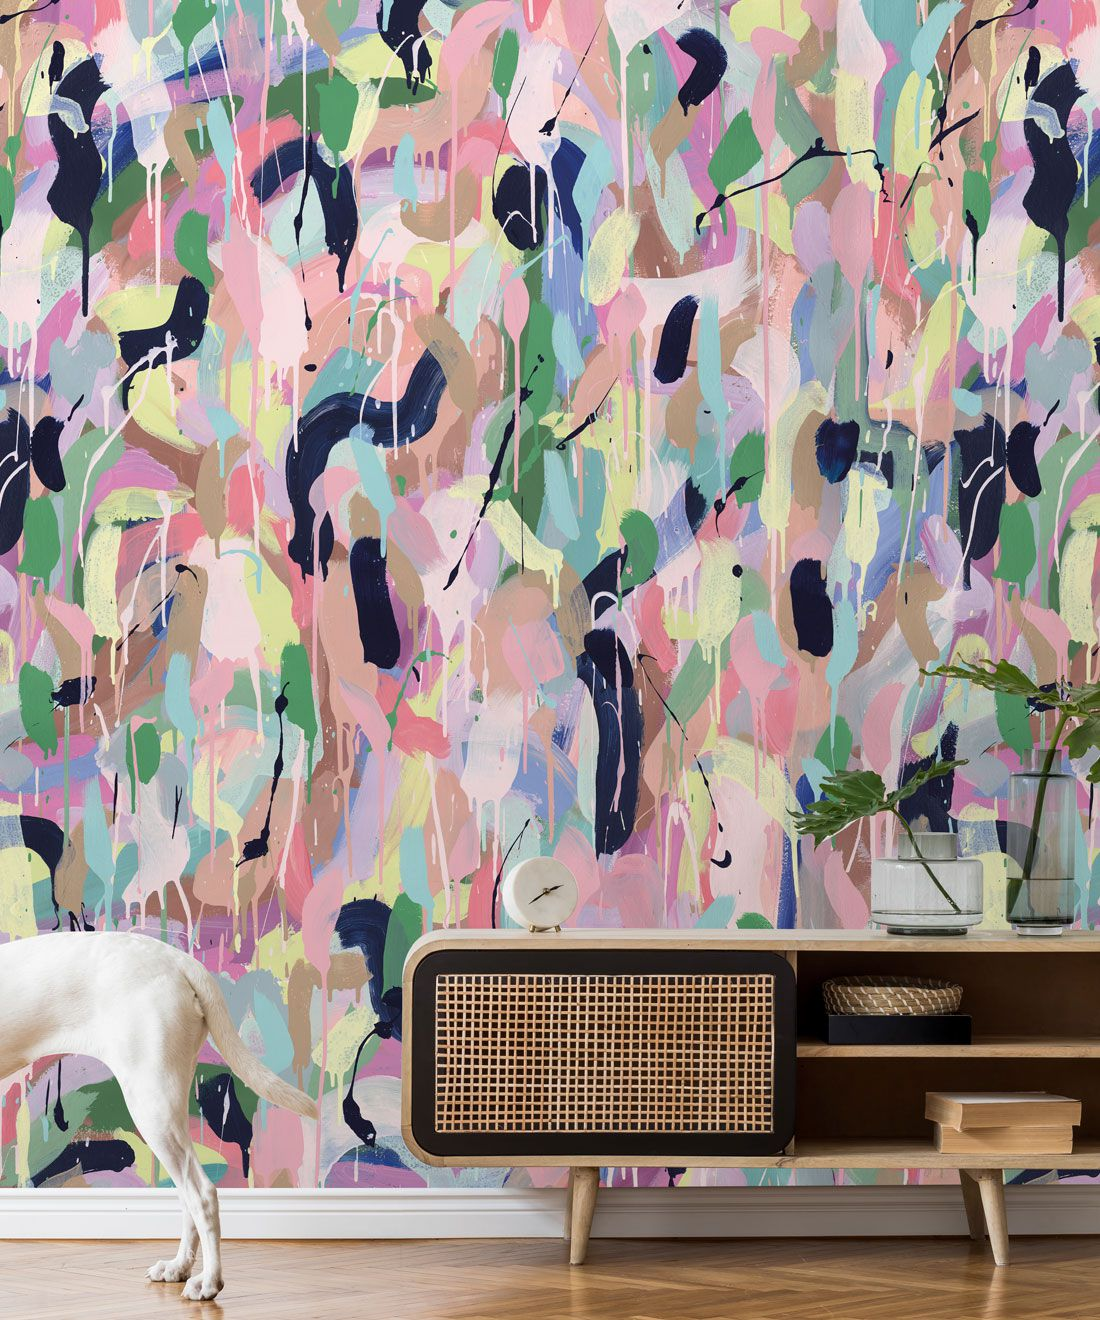 Between Tides Wallpaper •Colourful Painterly Wallpaper • Tiff Manuell • Abstract Expressionist Wallpaper • Close Up Insitu